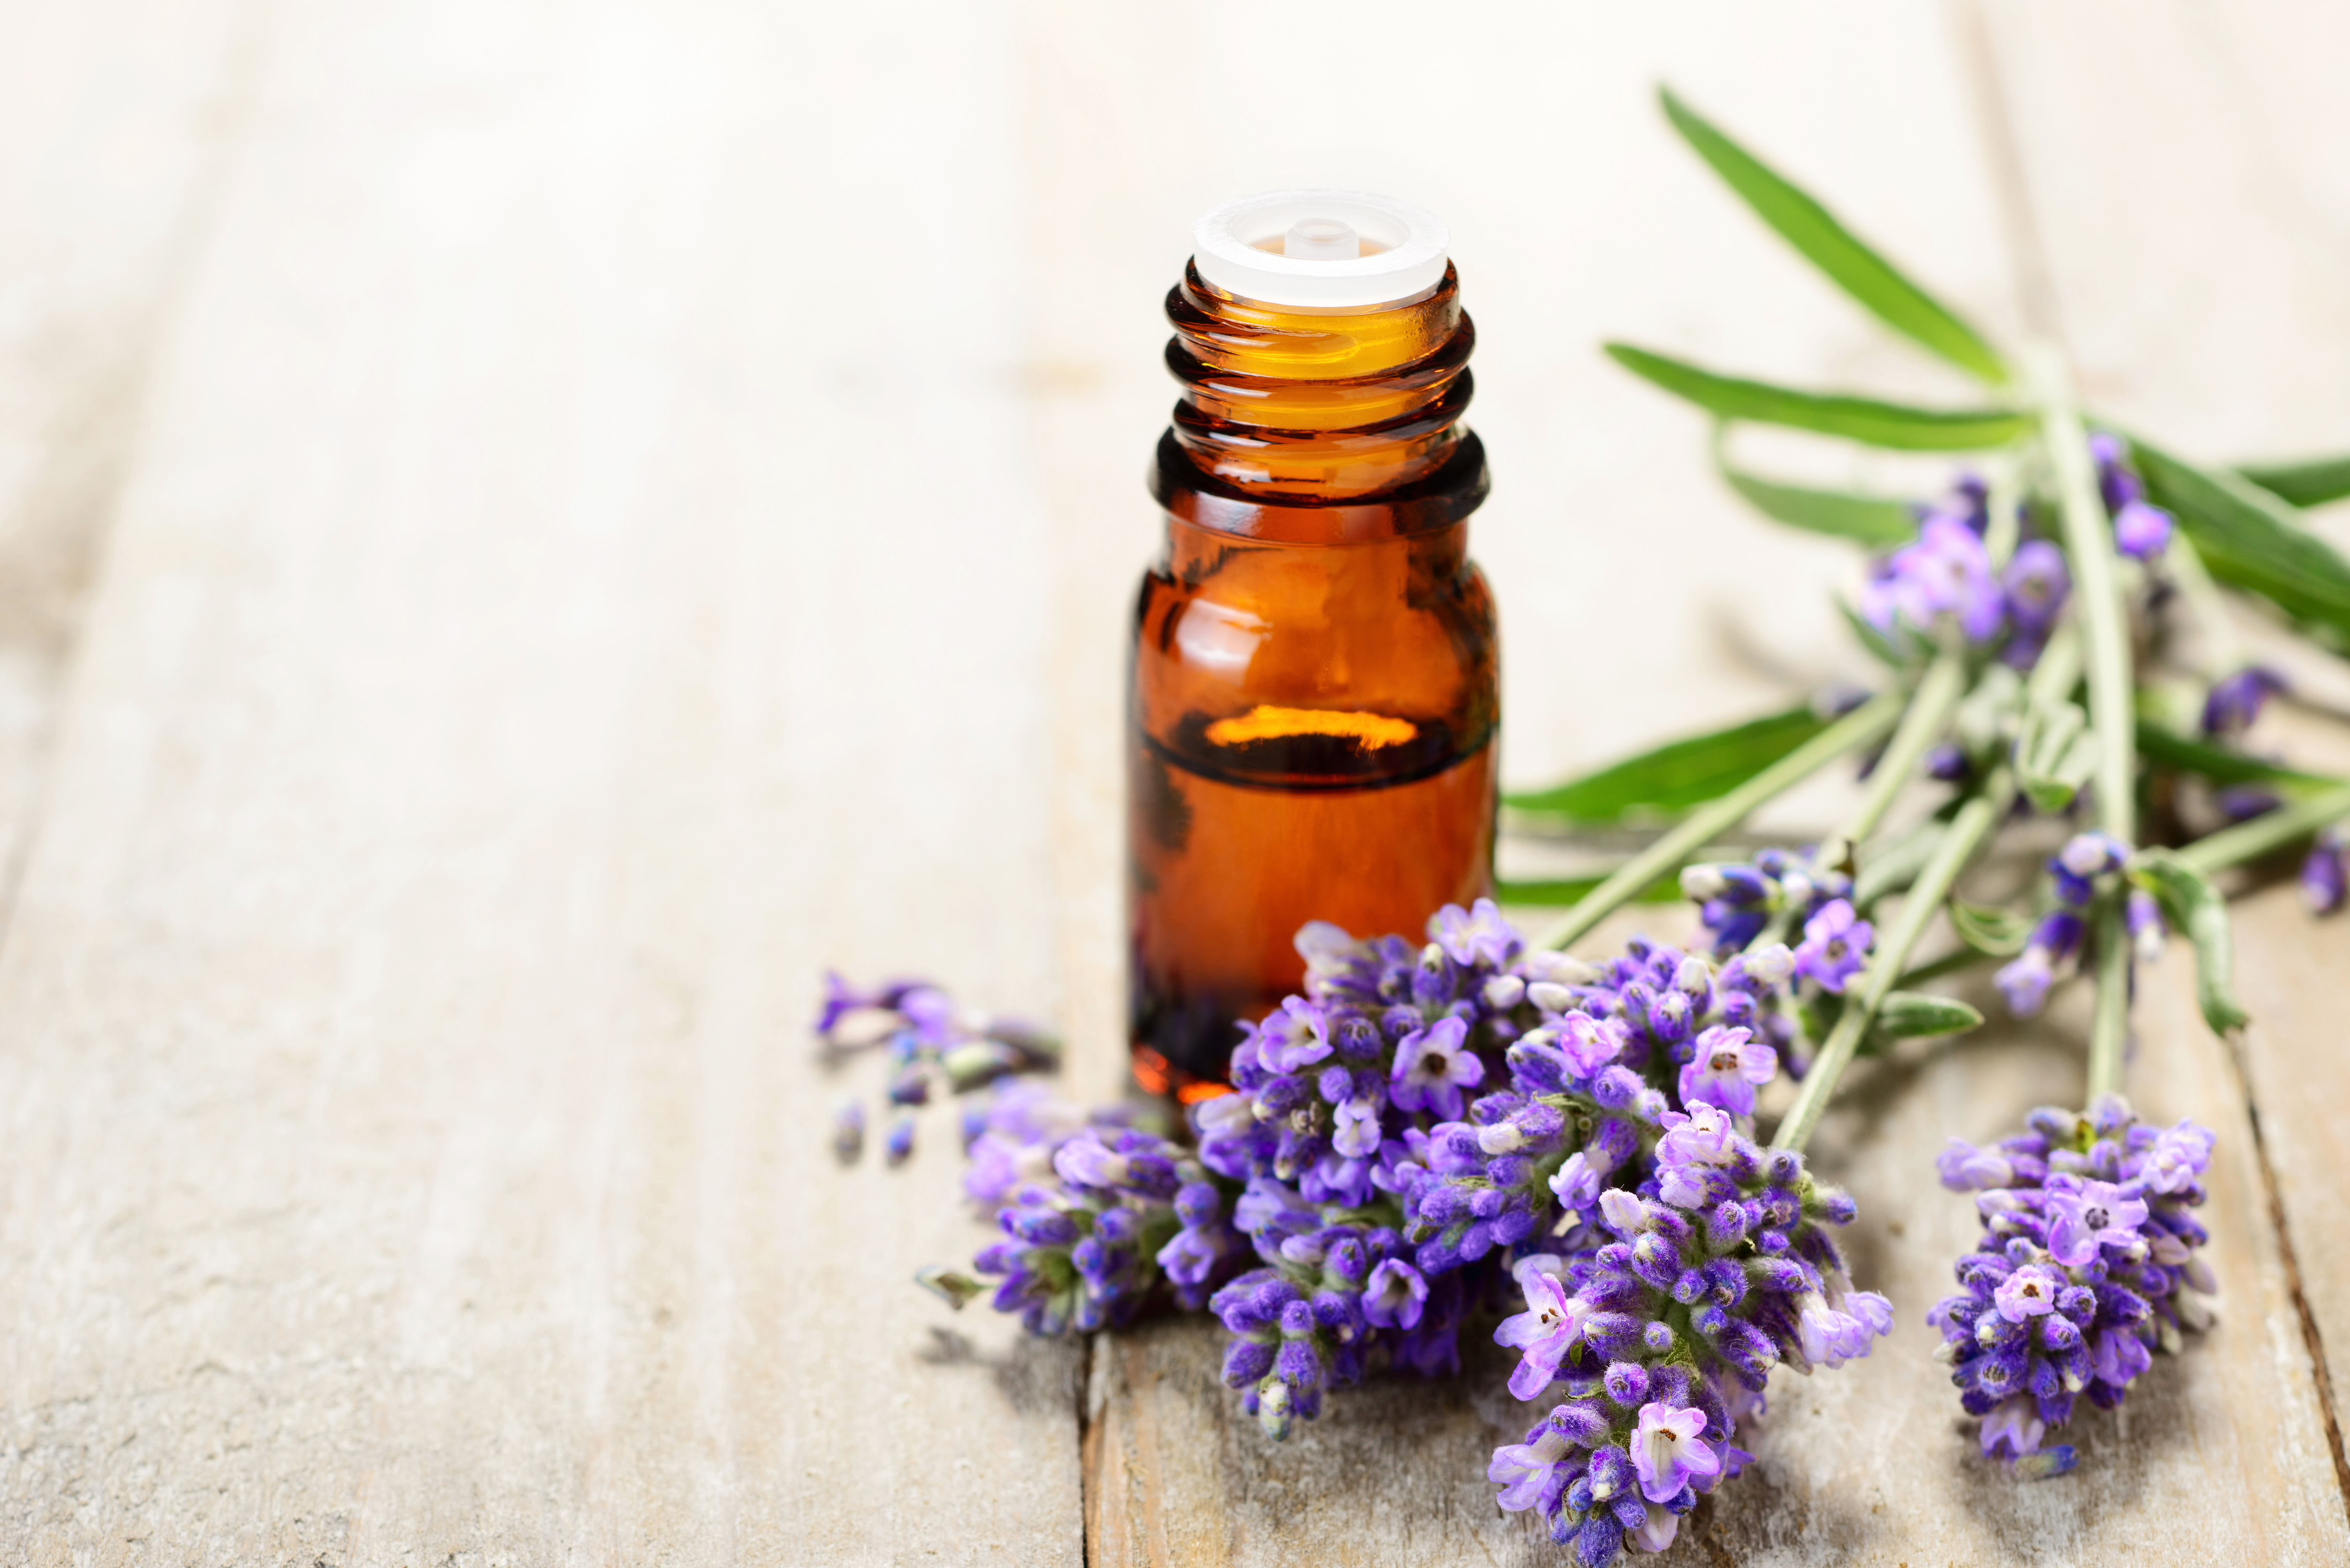 Aromatherapy for a better night's sleep